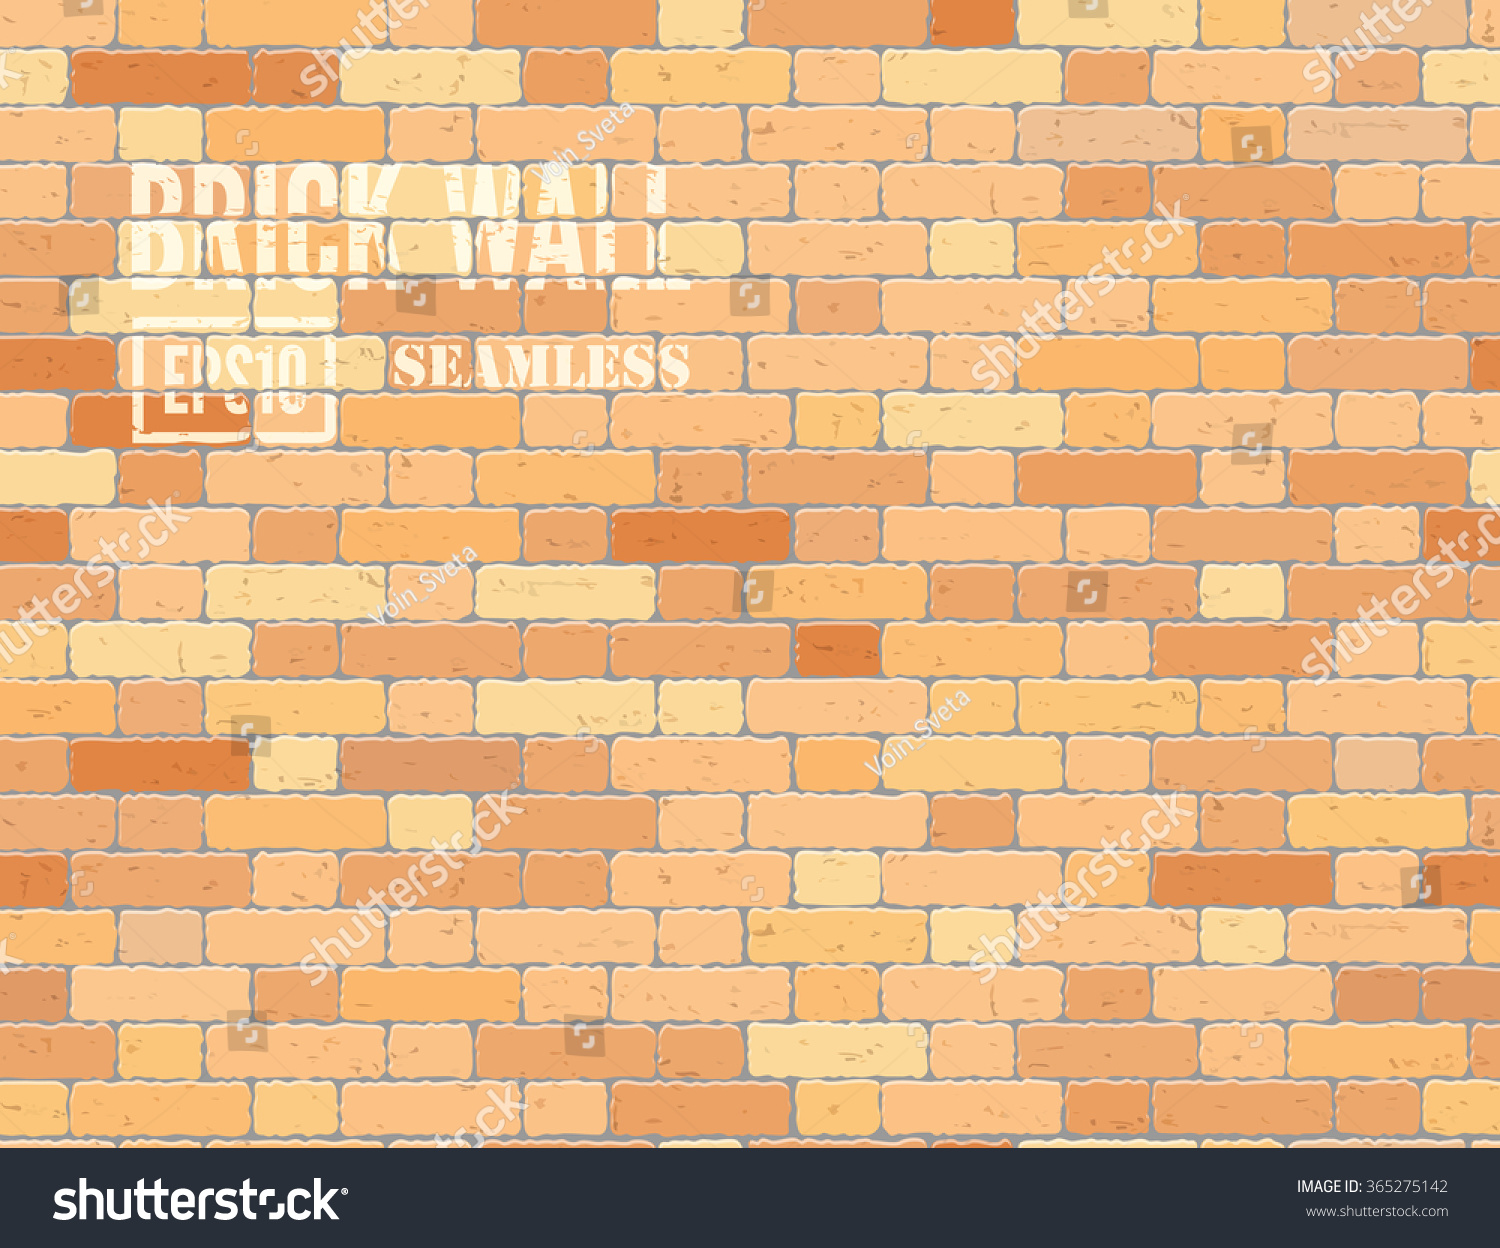 Vector Grunge Old Brick Wall Seamless Stock Vector (Royalty Free ...